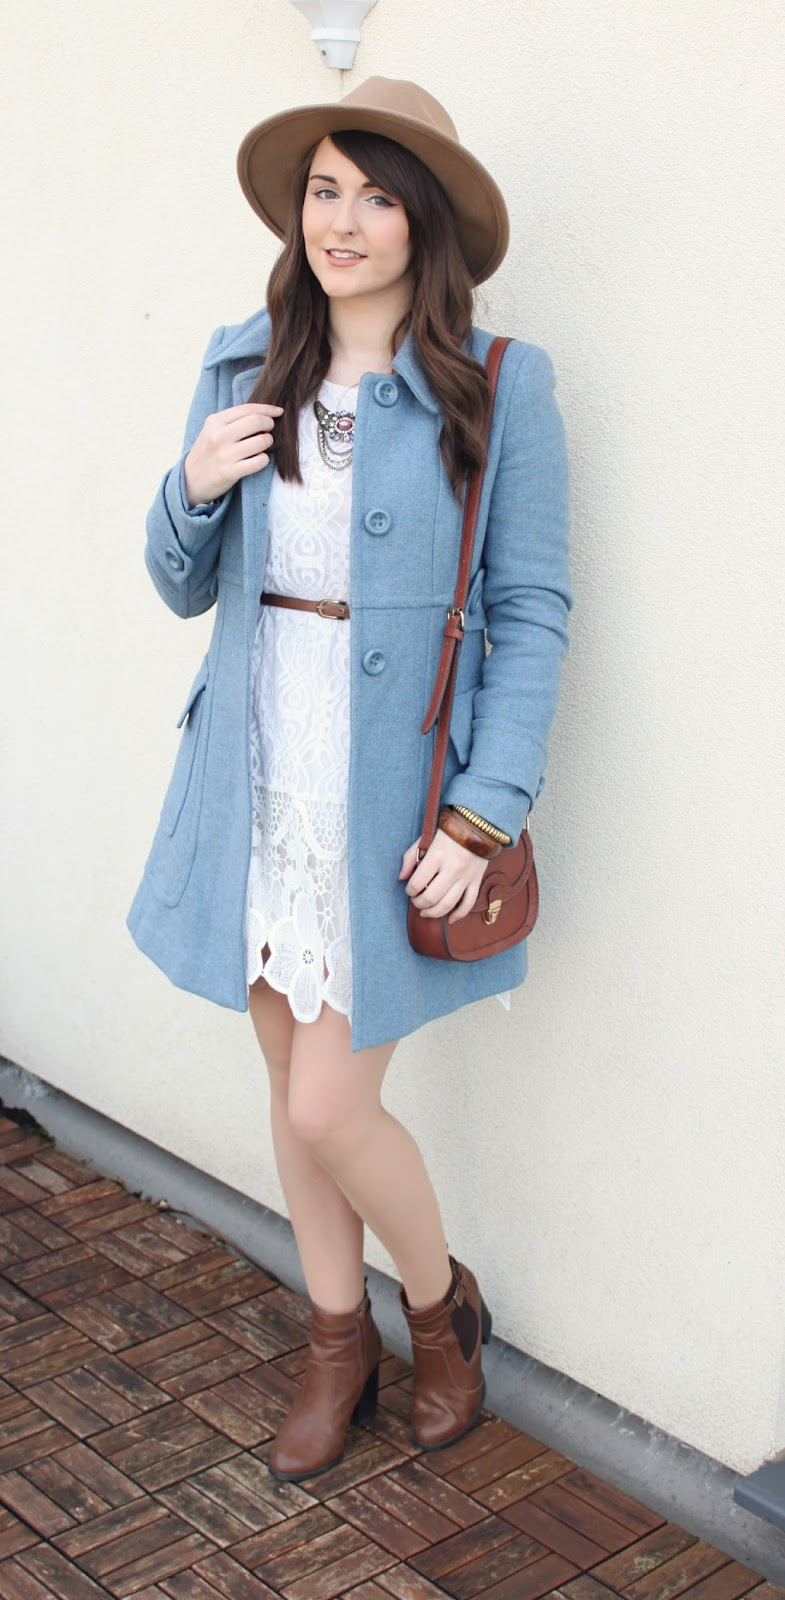 white-lace-bohemian-style-dress-with-pastel-blue-coat